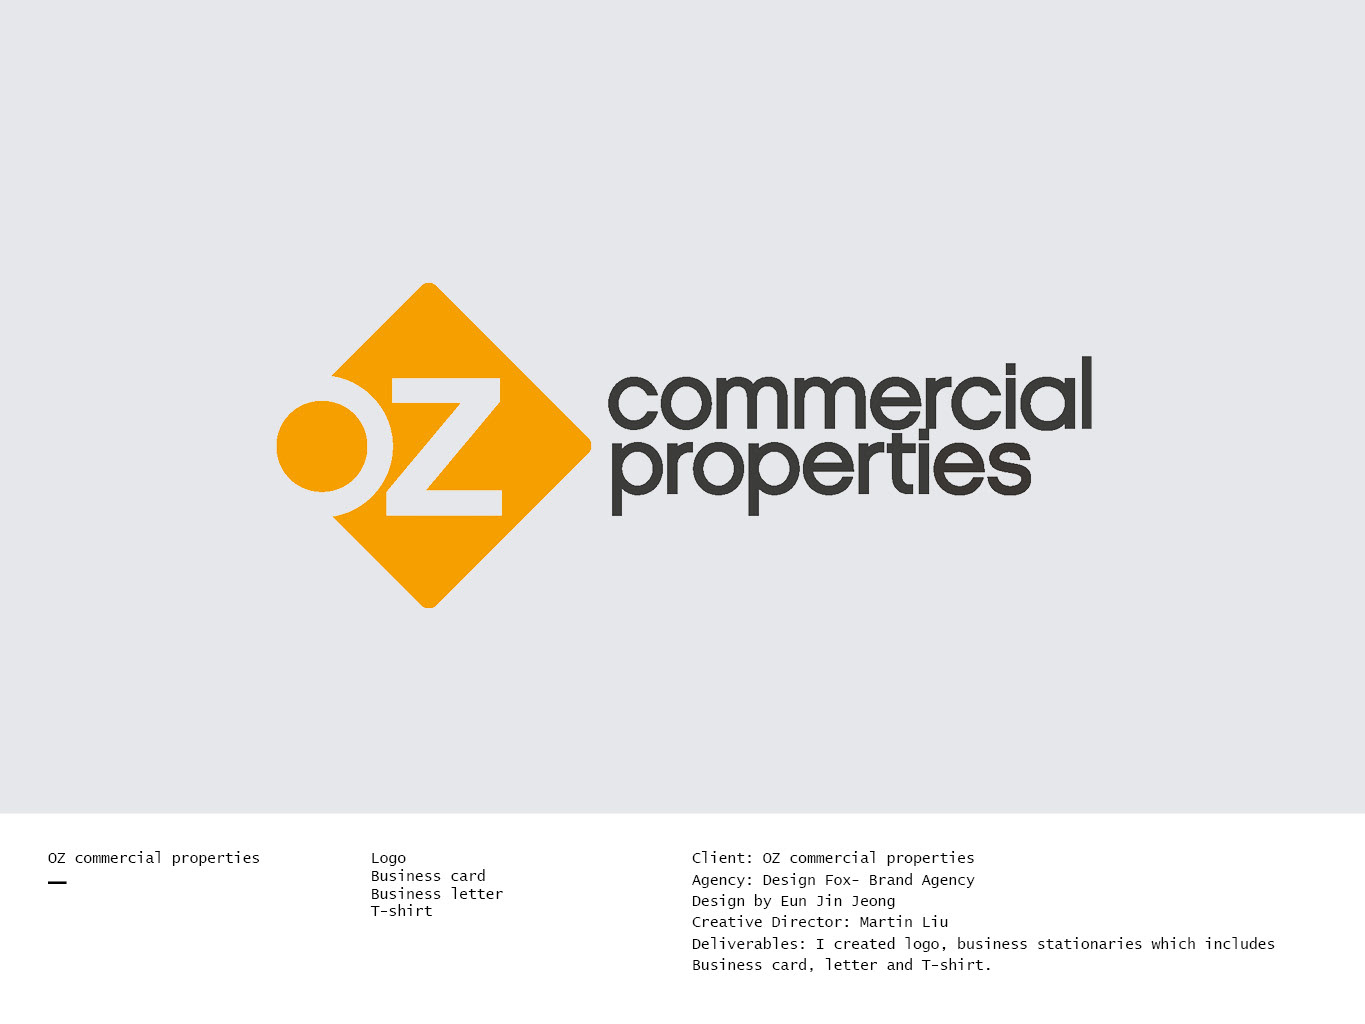 Eunjin jeong oz commercial properties design by eun jin jeong creative director martin liu deliverables a logo business stationeries which include business card letter and t shirt reheart Images